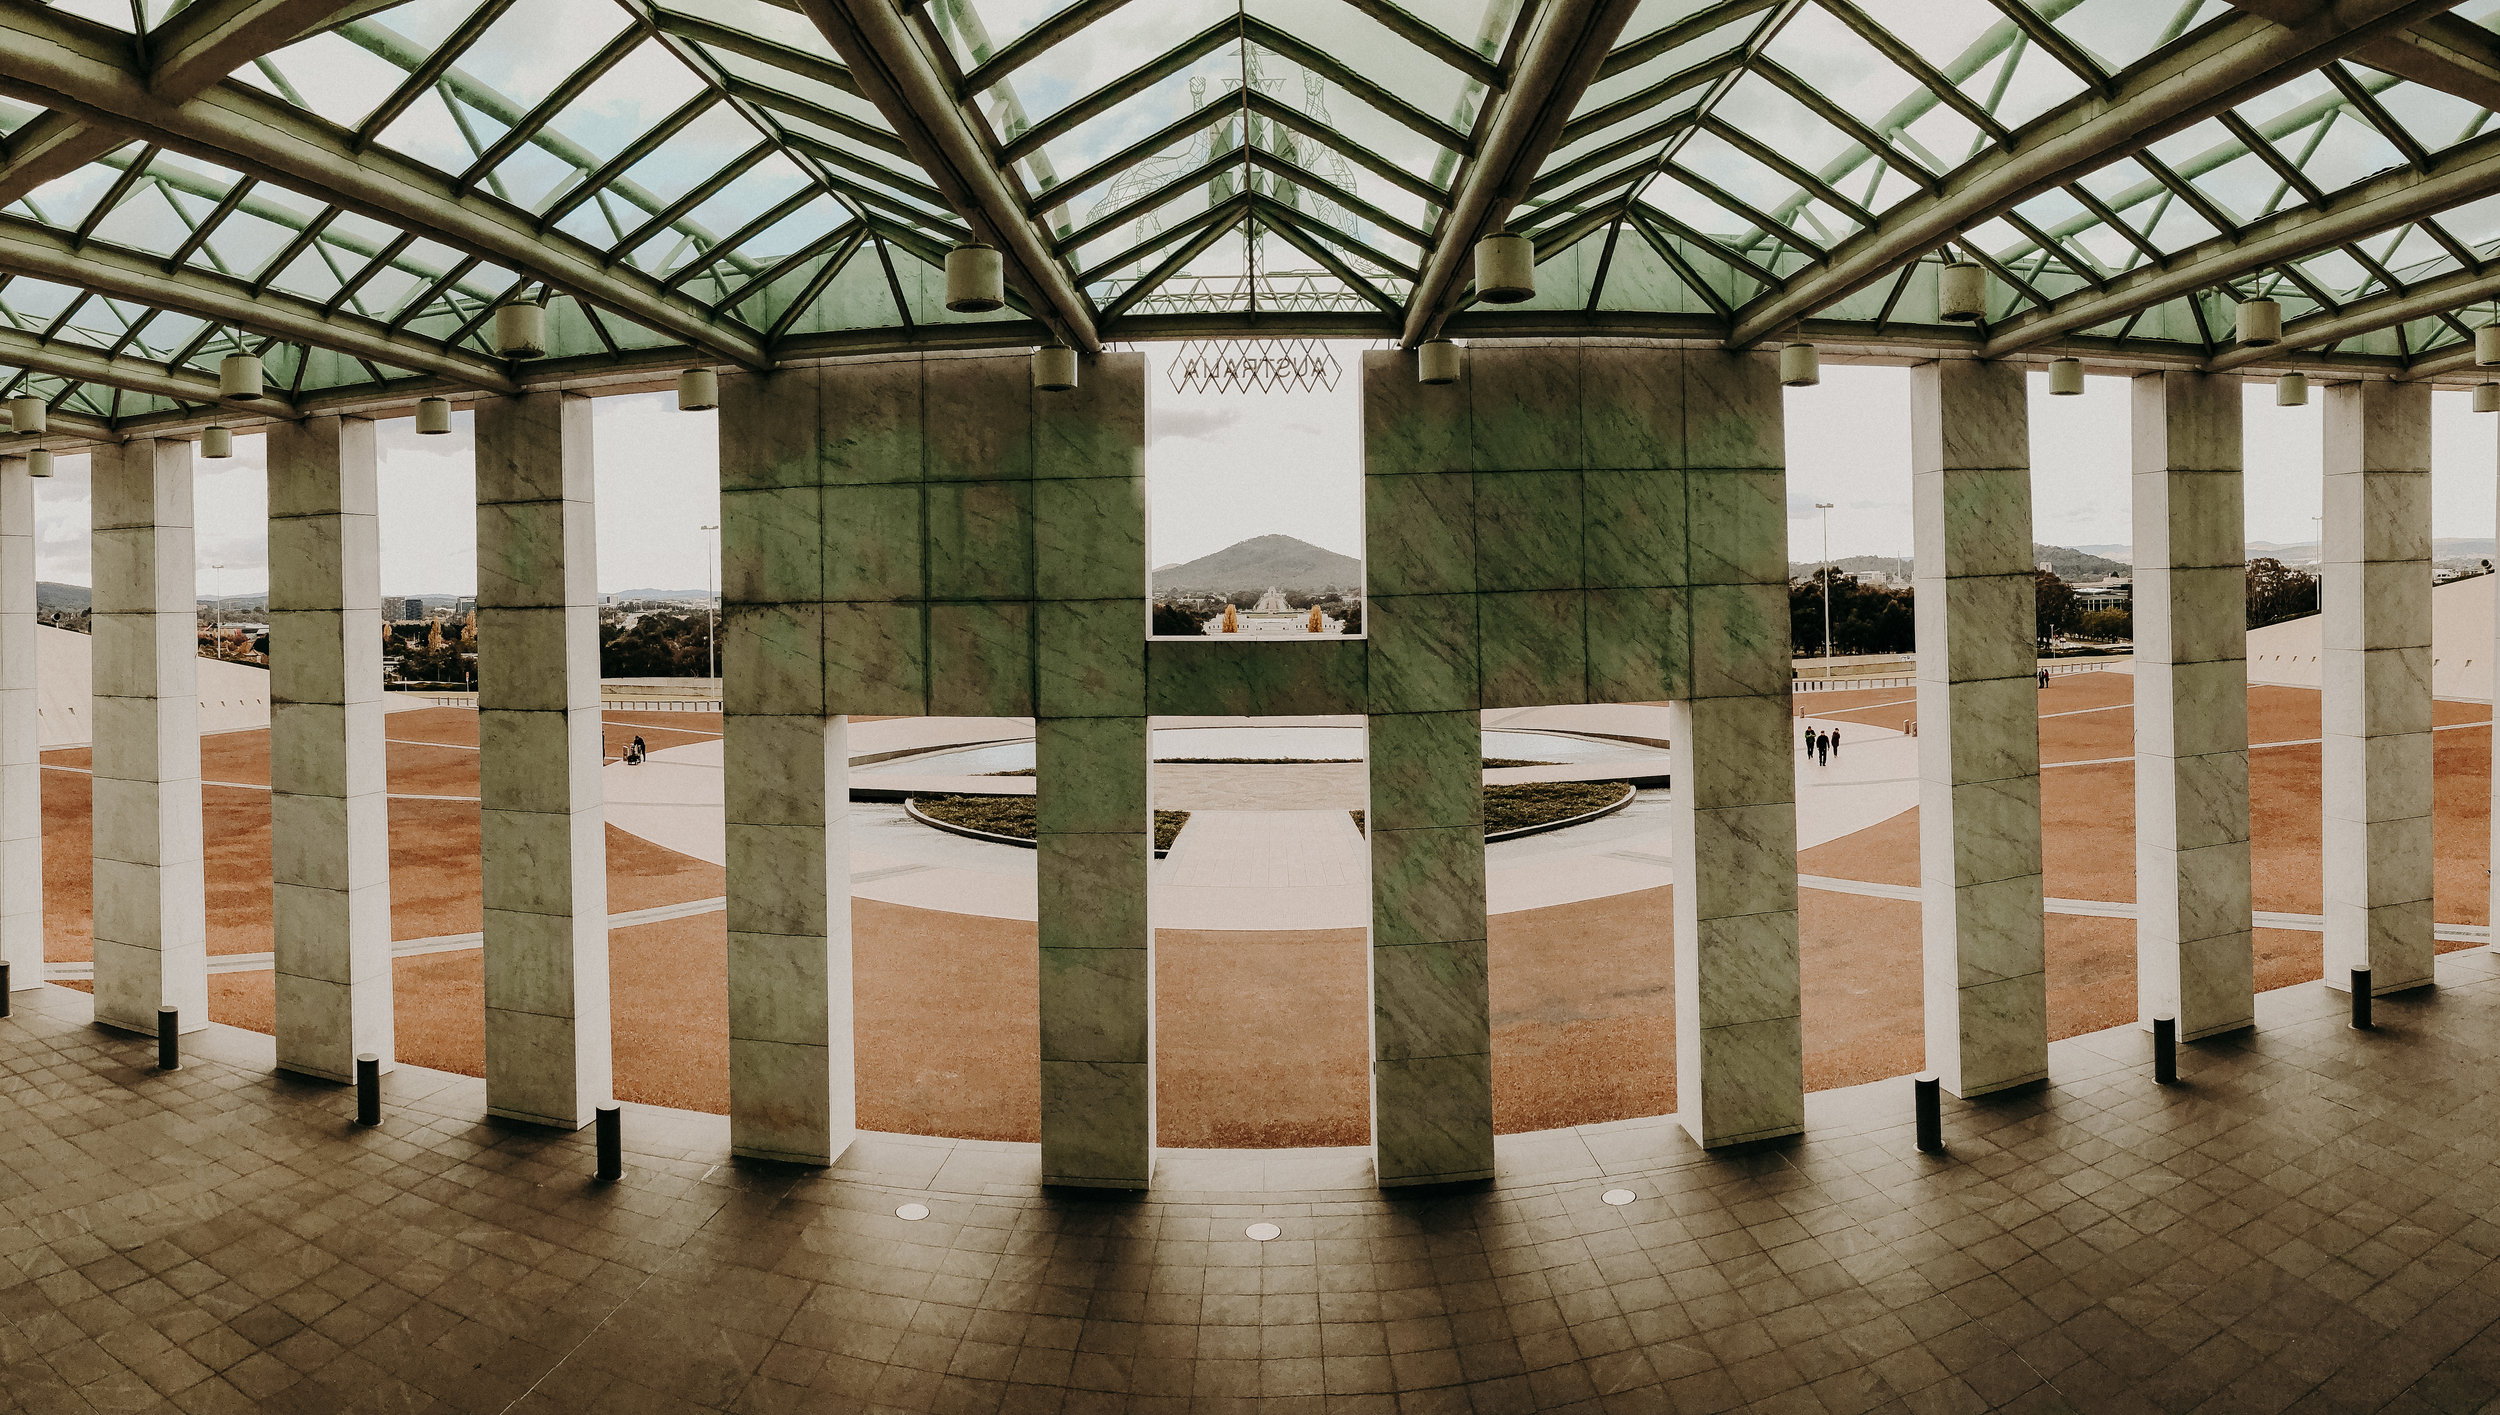 Panorama taken on the balcony of the new Parliament House.